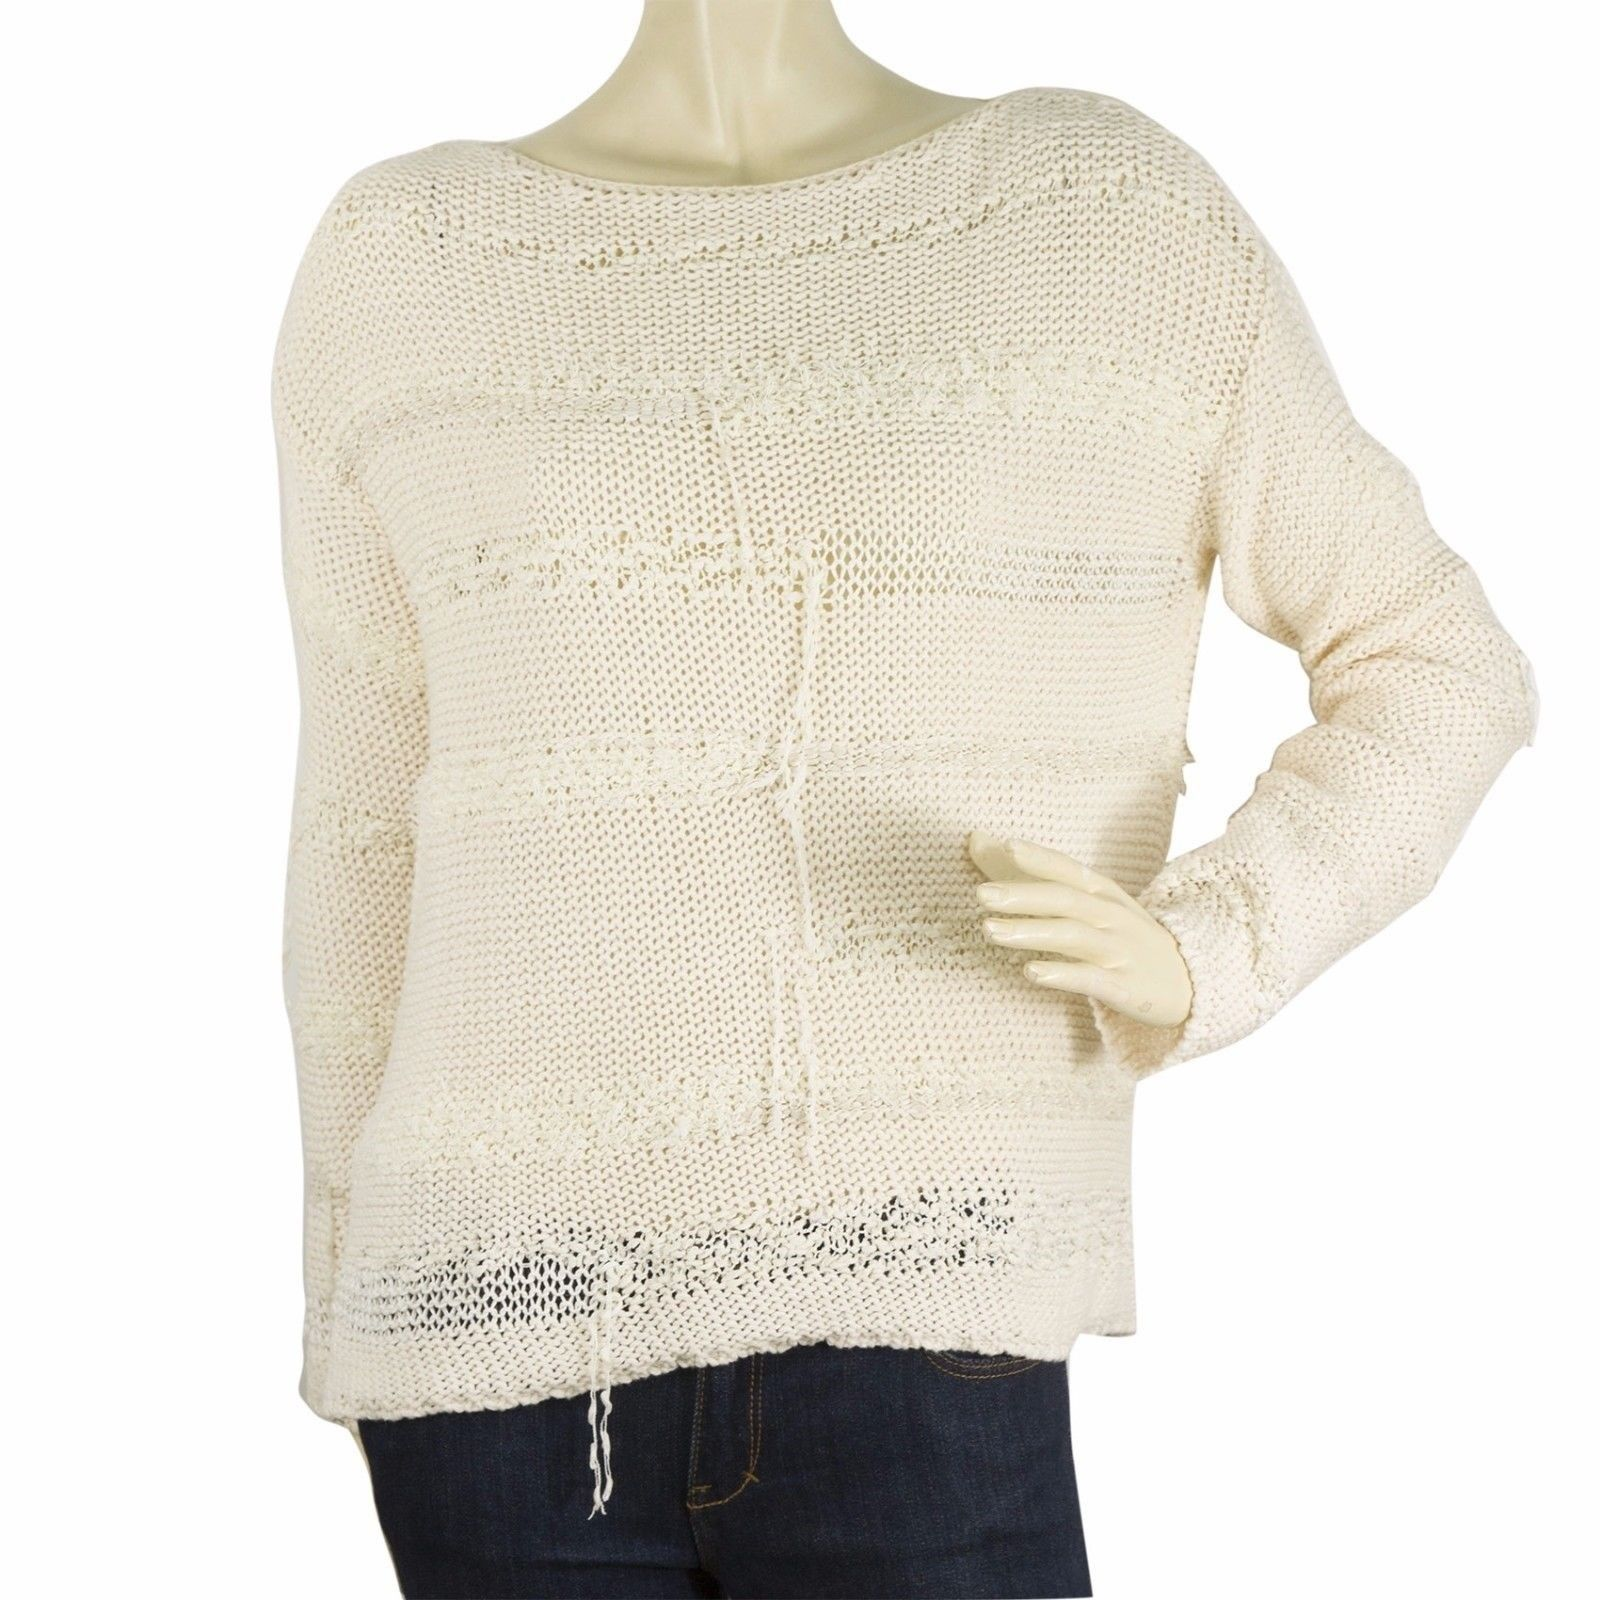 Zadig & Voltaire Deluxa line Cream Long sleeve knit blouse s master deluxe mix s - $130.90